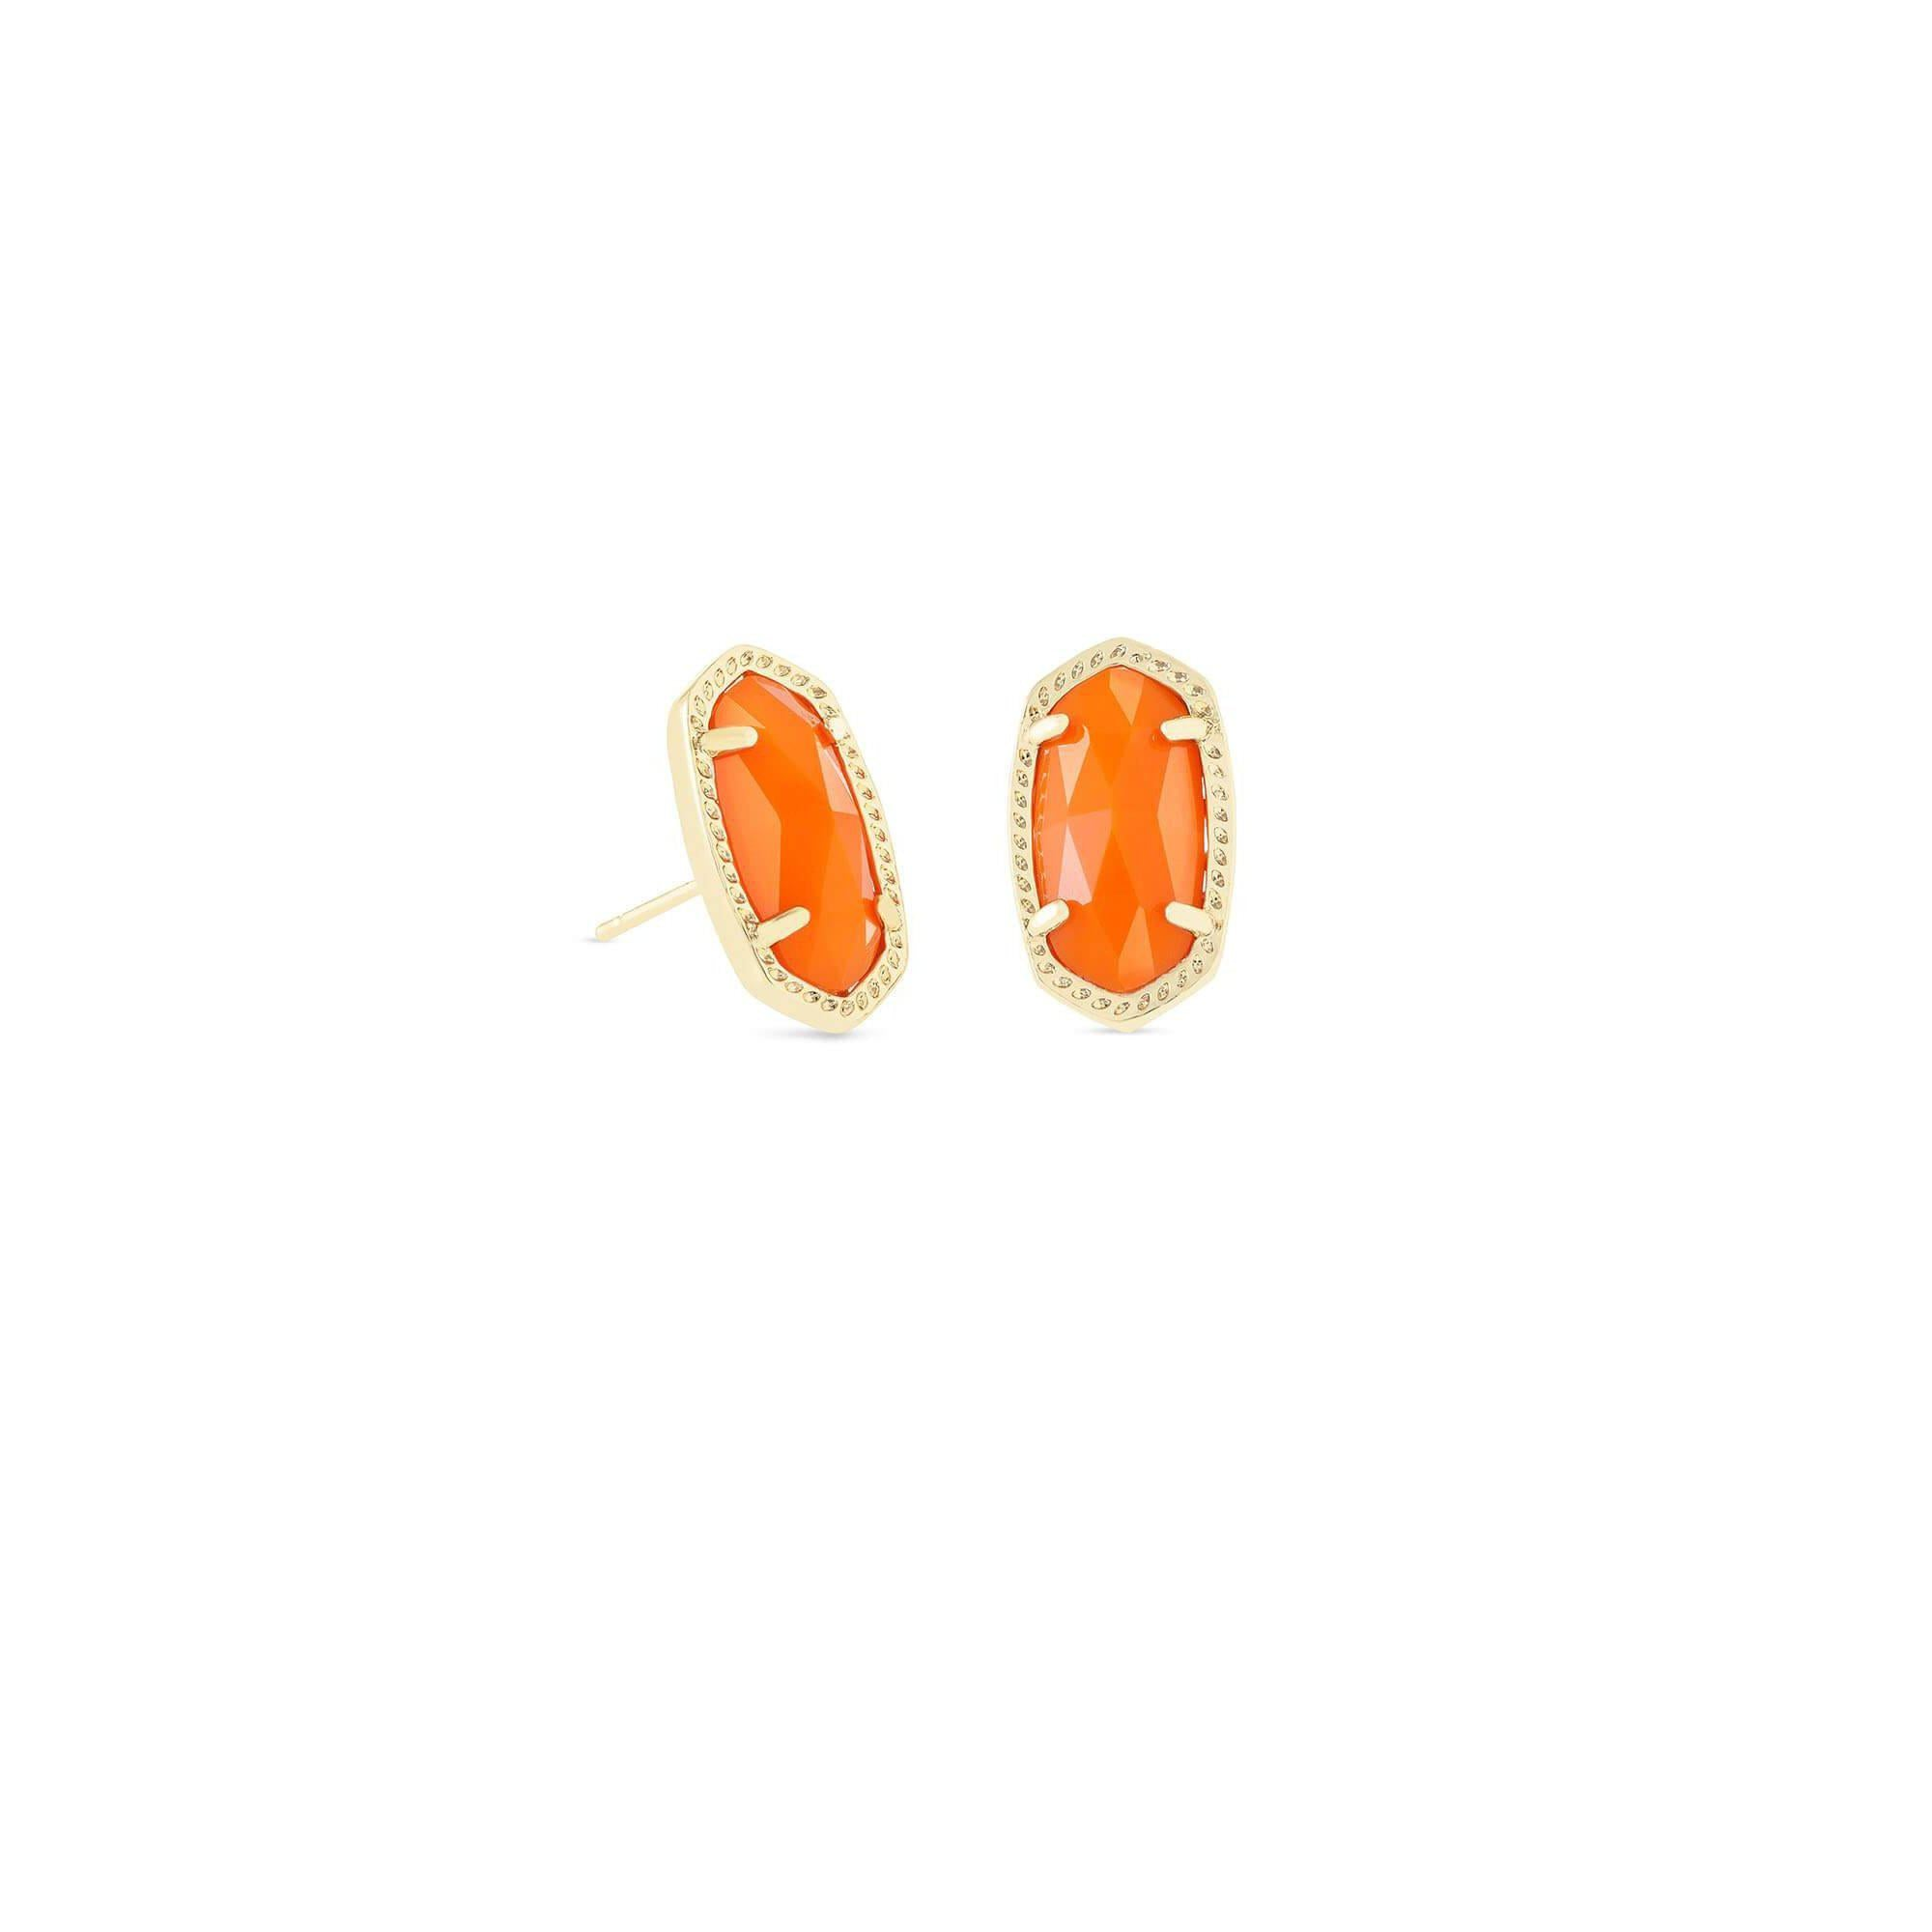 KS Ellie Earrings in Orange Gold